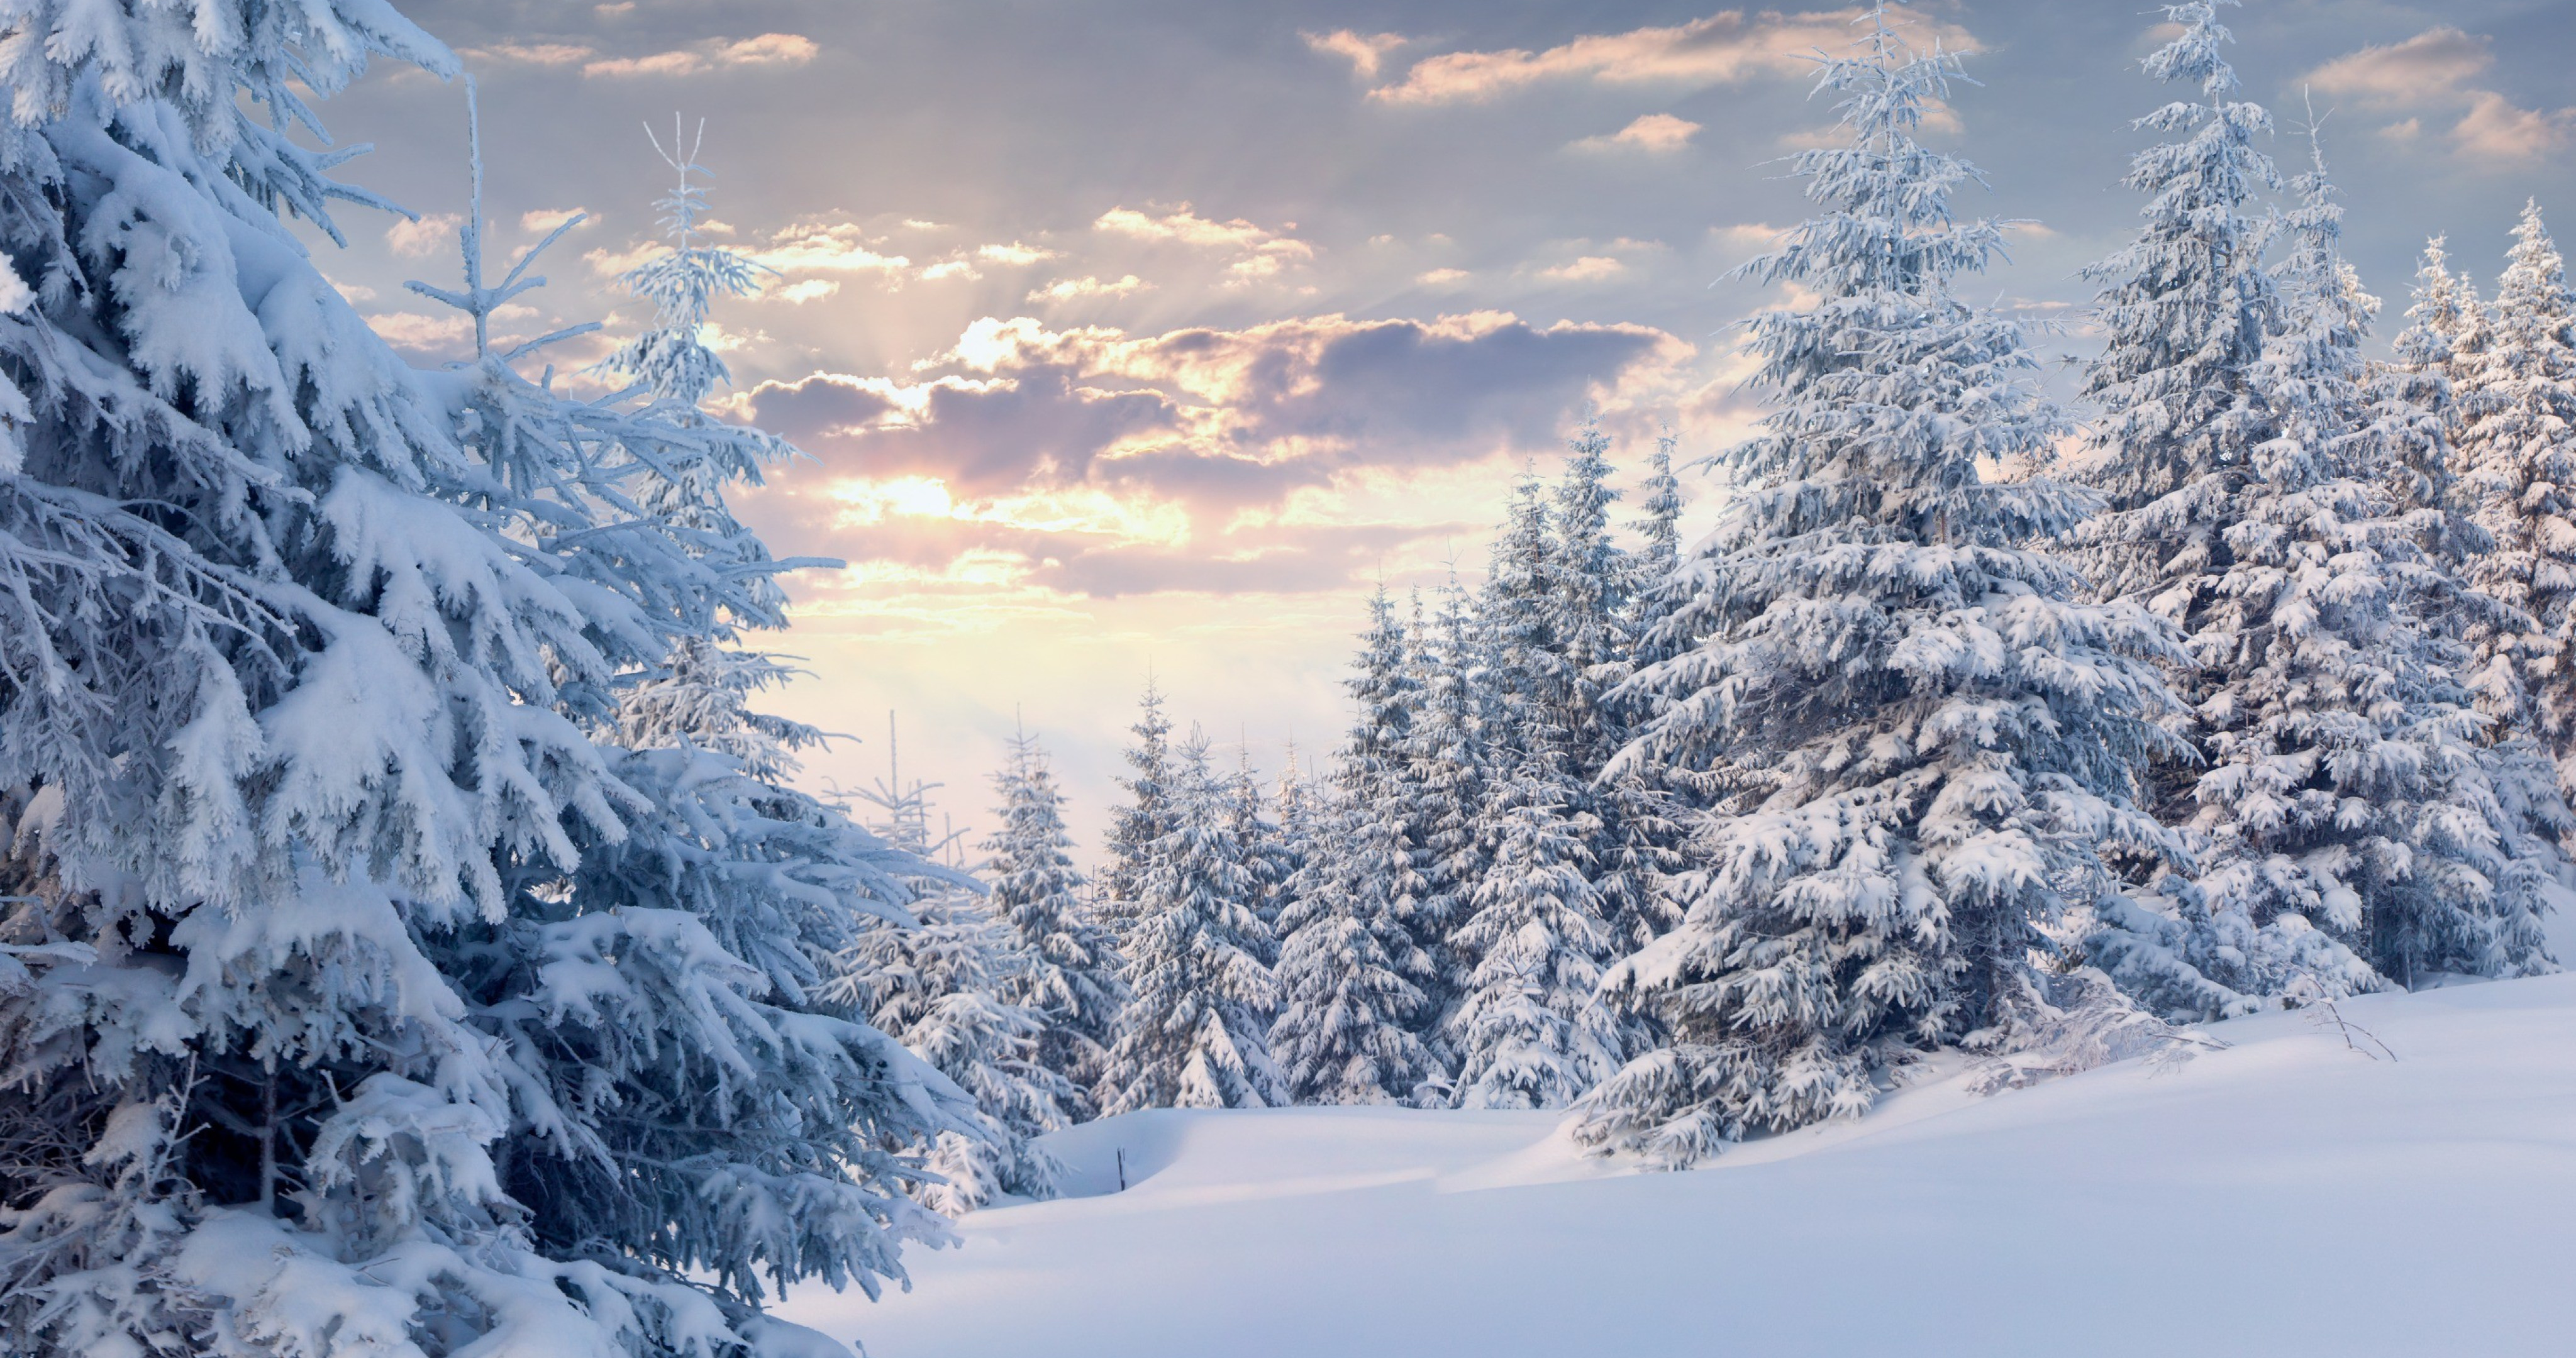 4k snow wallpapers high quality download free - Snowy wallpaper ...